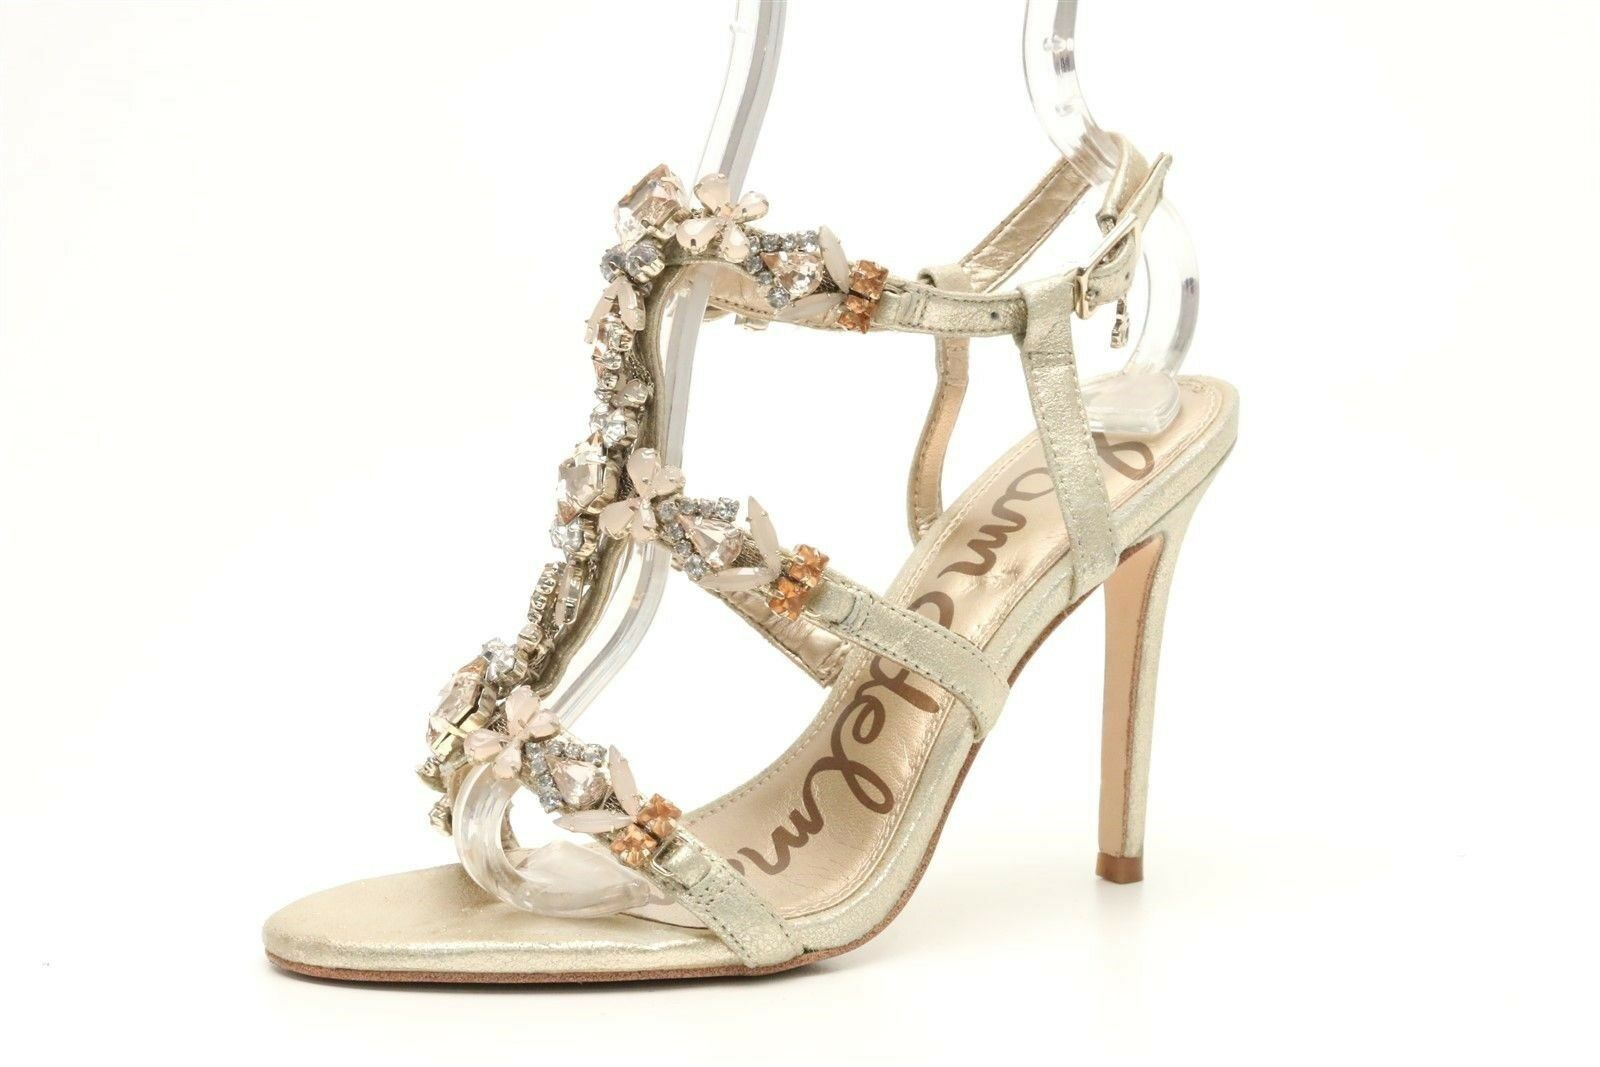 Womens SAM EDELMAN gold jeweled strappy ankle strap sandals sz. 6 M  160